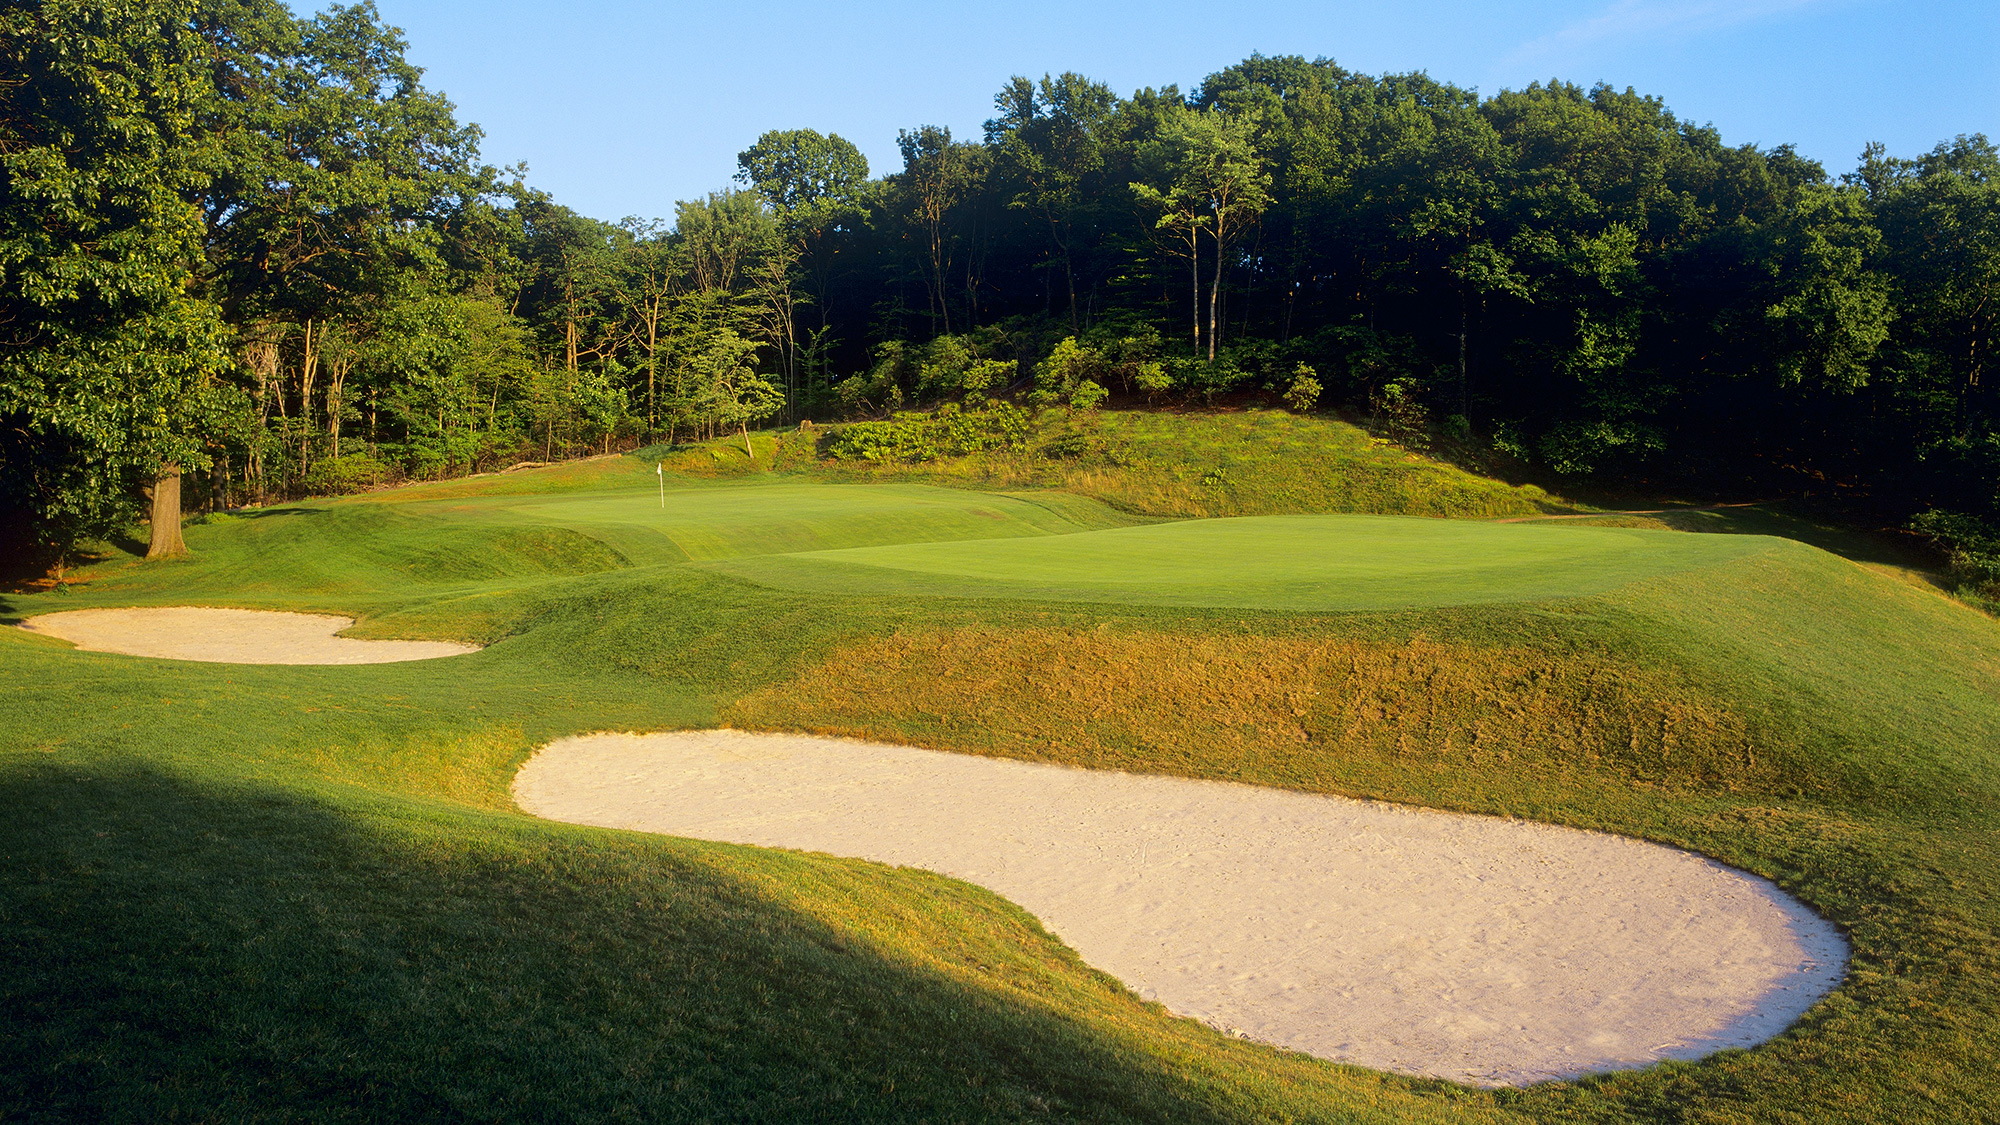 Public: Lake of Isles (North), North Stonington⇐ Private: Yale University, New Haven                           TEE TIMES